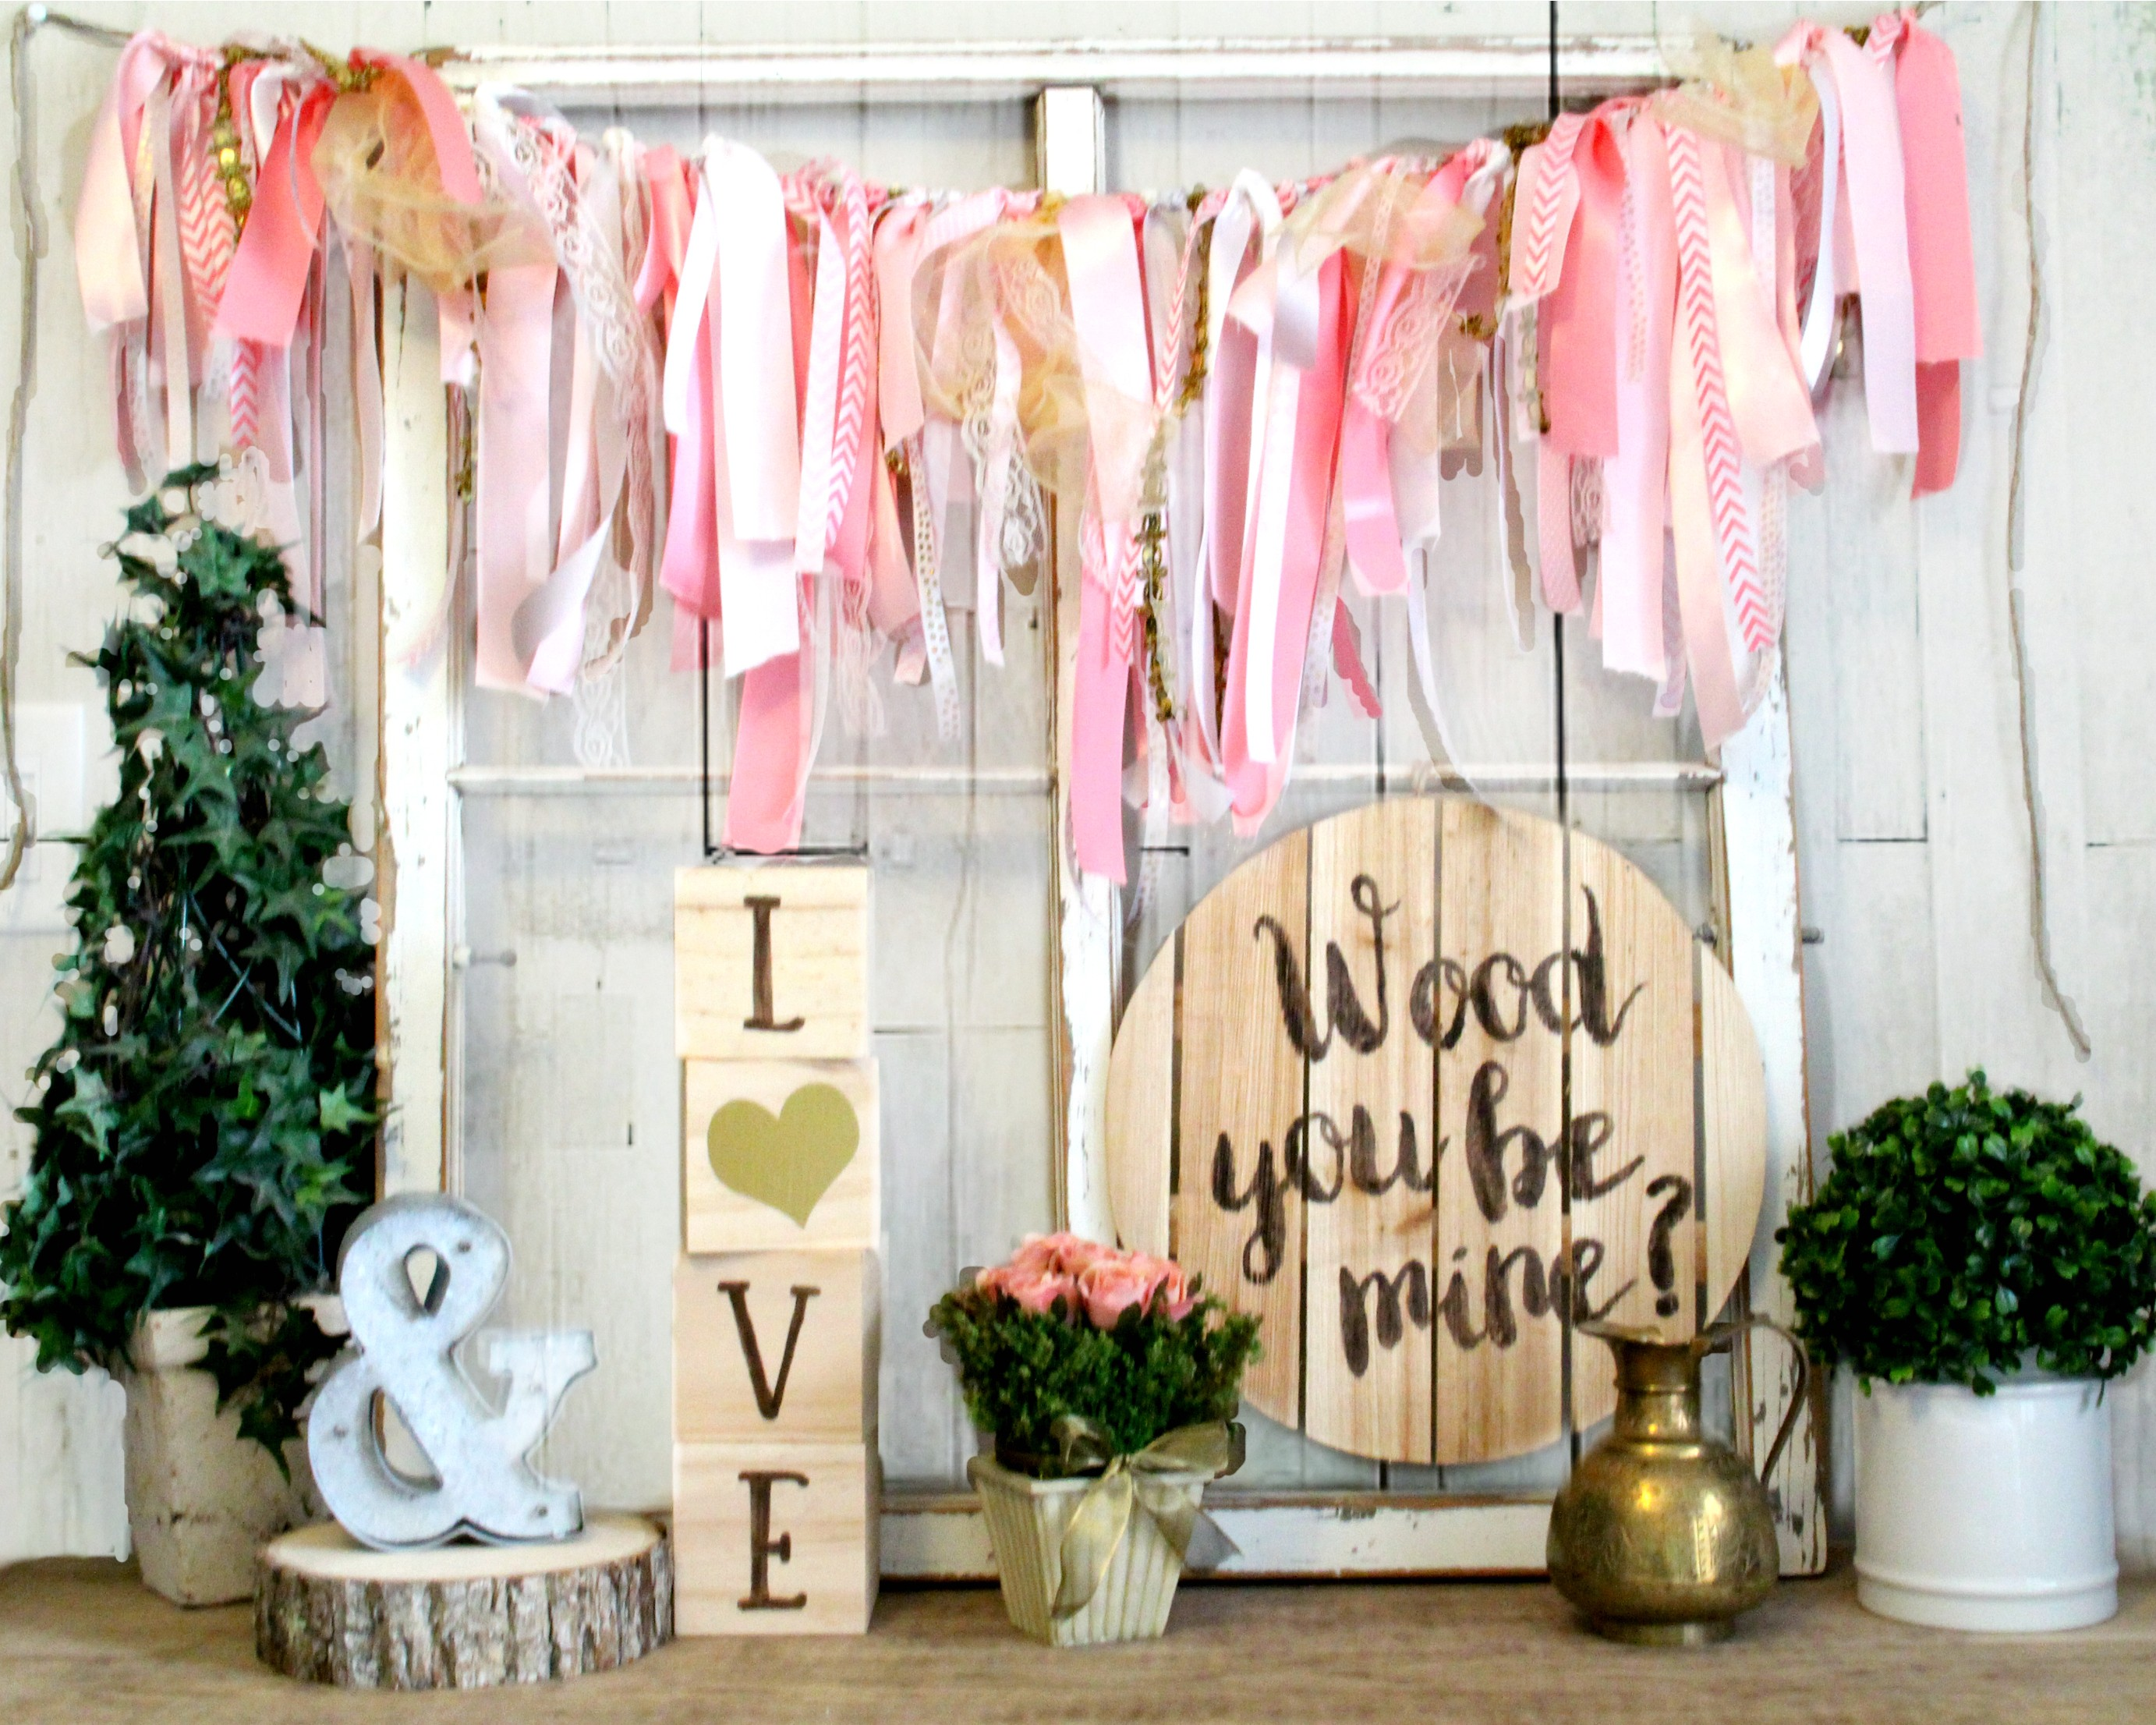 Rustic Valentines Day Decor - Wood You Be Mine? Wall Hanging